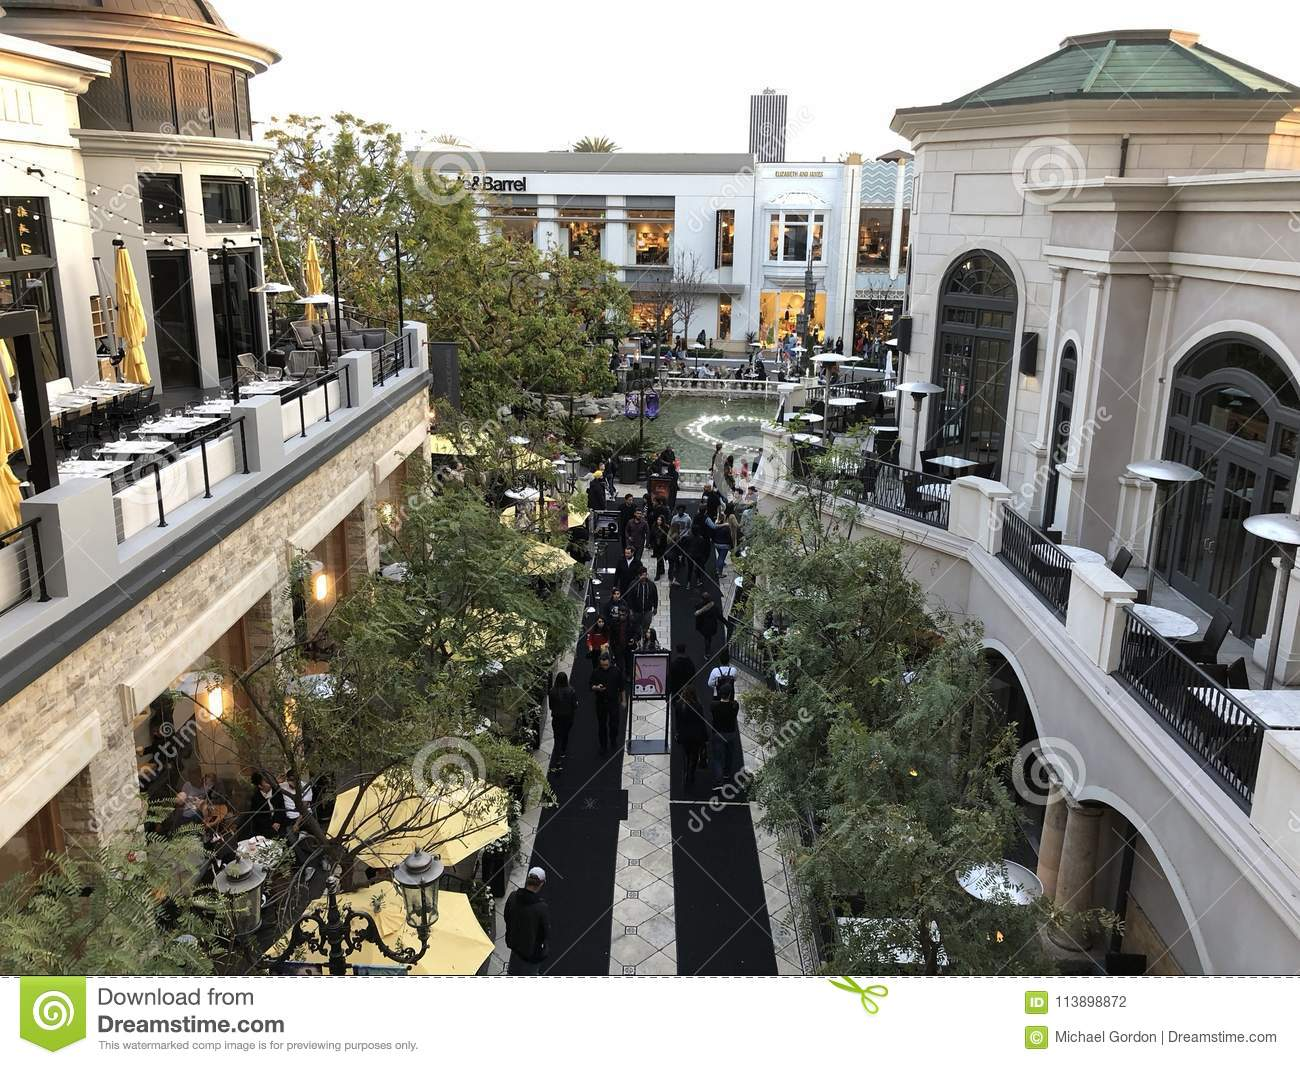 The Grove Shopping Mall In Los Angeles. Editorial Photography ... on the grove at farmers market, the grove mall pretoria, third street promenade, otay ranch town center, westfield topanga, the grove mall in california, south coast plaza, the grove beverly hills, los angeles sports and entertainment district, the grove trolley, the grove santa, westfield century city, the grove wesley chapel, sunrise mall, the improv, universal citywalk, the grove shopping center, santa monica place, the grove shopping mall, glendale galleria, the grove 3rd street, cbs television city, del amo fashion center, the beverly center, the grove ca, the grove movie theater, fashion island, the grove in hollywood, the grove la, angels flight, the grove fountain, americana at brand,